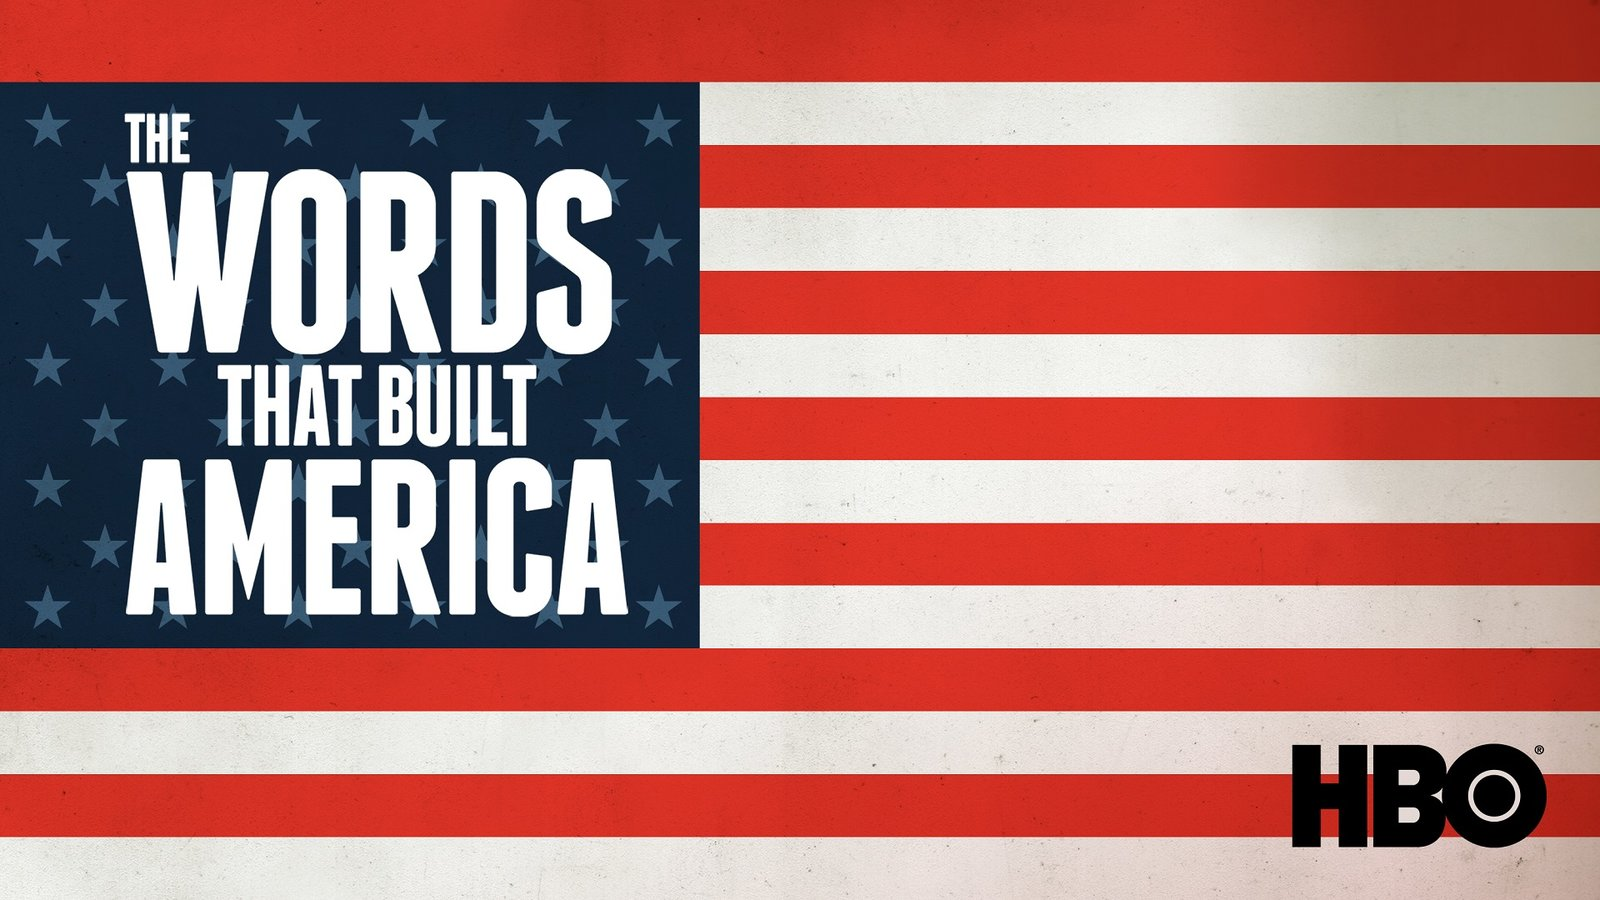 The Words That Built America - The Declaration of Independence, The United States Constitution, and The Bill of Rights